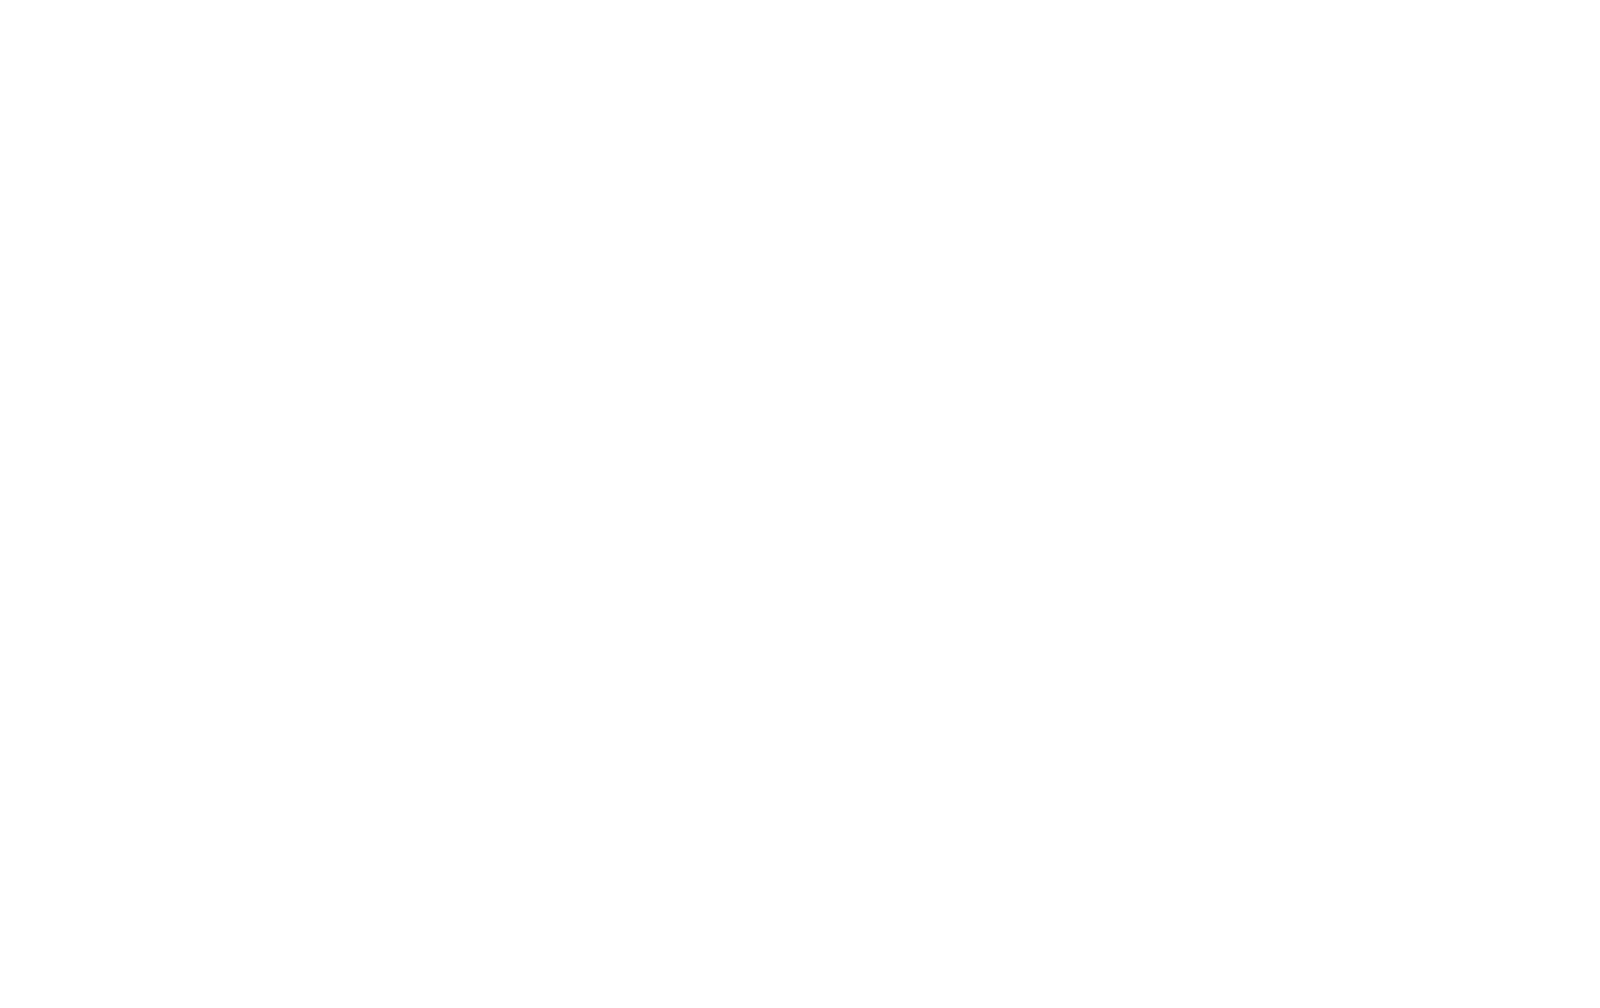 High Desert Utilities